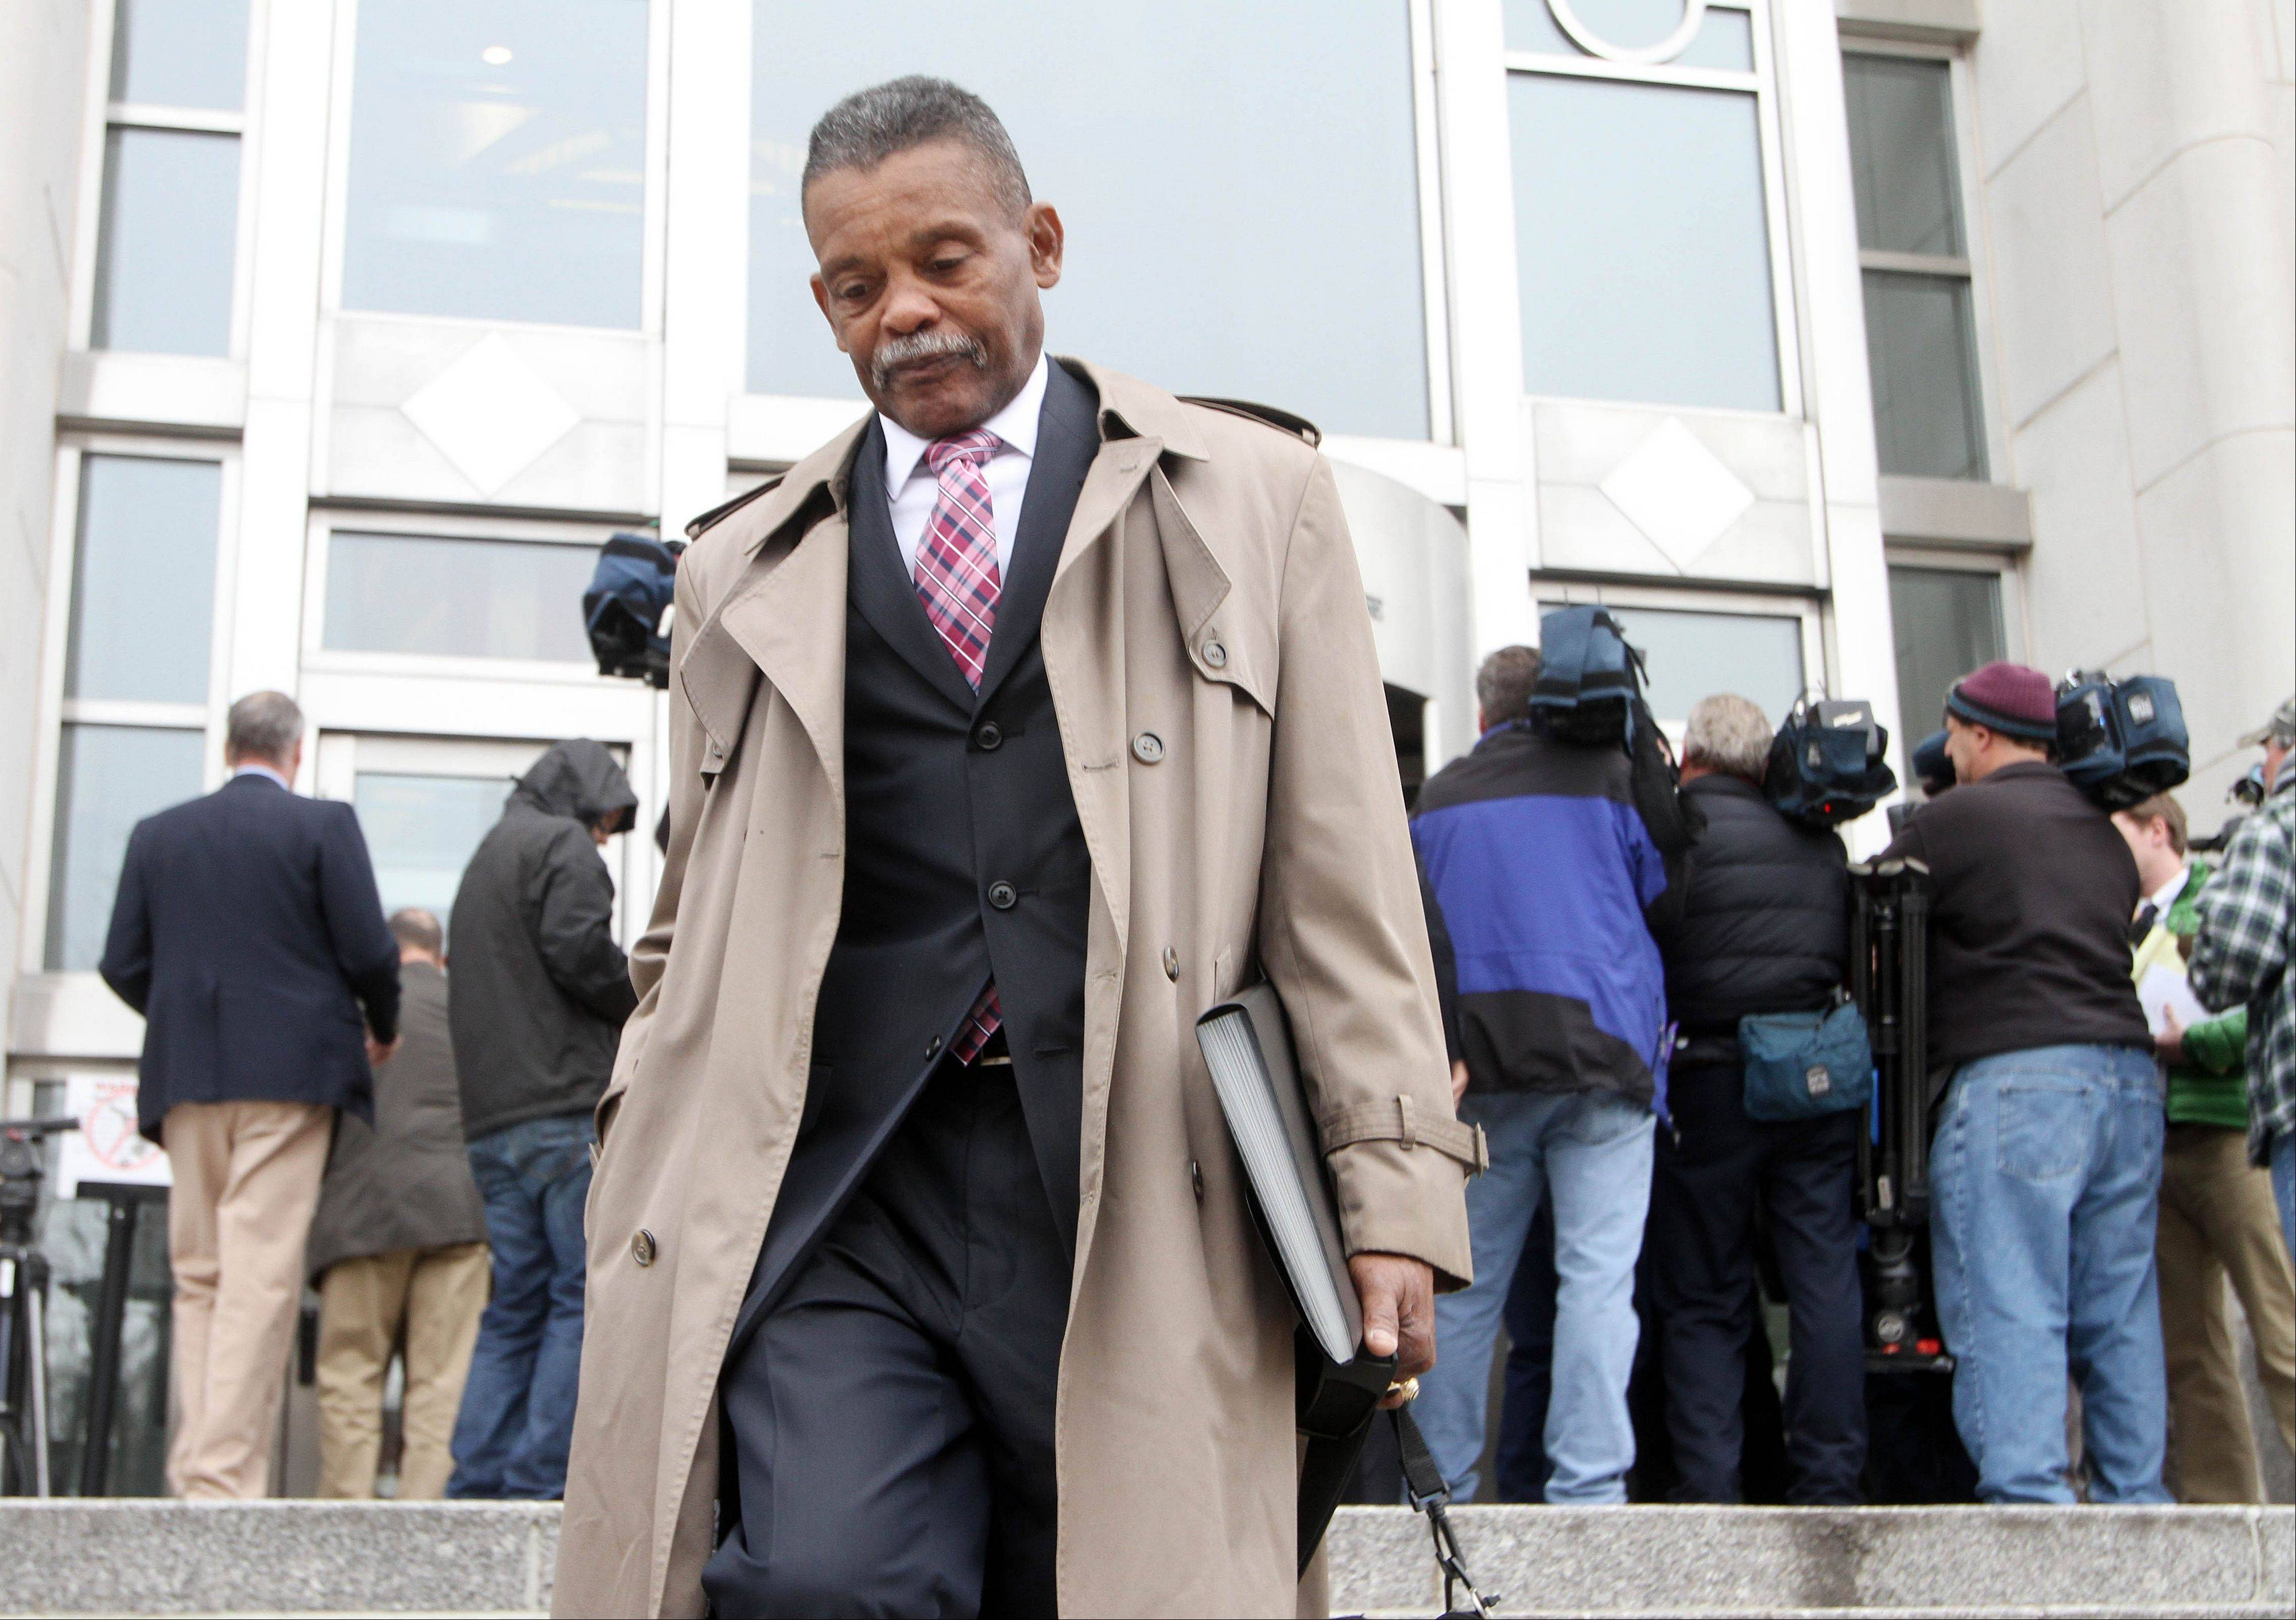 Linwood Nelson, who was infected with hepatitis C when he went in for a procedure at the Baltimore VA Medical Center in 2012, leaves U.S. District Court in Concord, N.H., Monday after testifying against David Kwiatkowski, a medical technician who infected him. Kwiatkowski was sentenced to 39 years in prison for stealing painkillers and infecting dozens of patients in four states with hepatitis C through tainted syringes. His victims have new hope for improved treatment with FDA�s approval Friday of the drug Sovaldi.